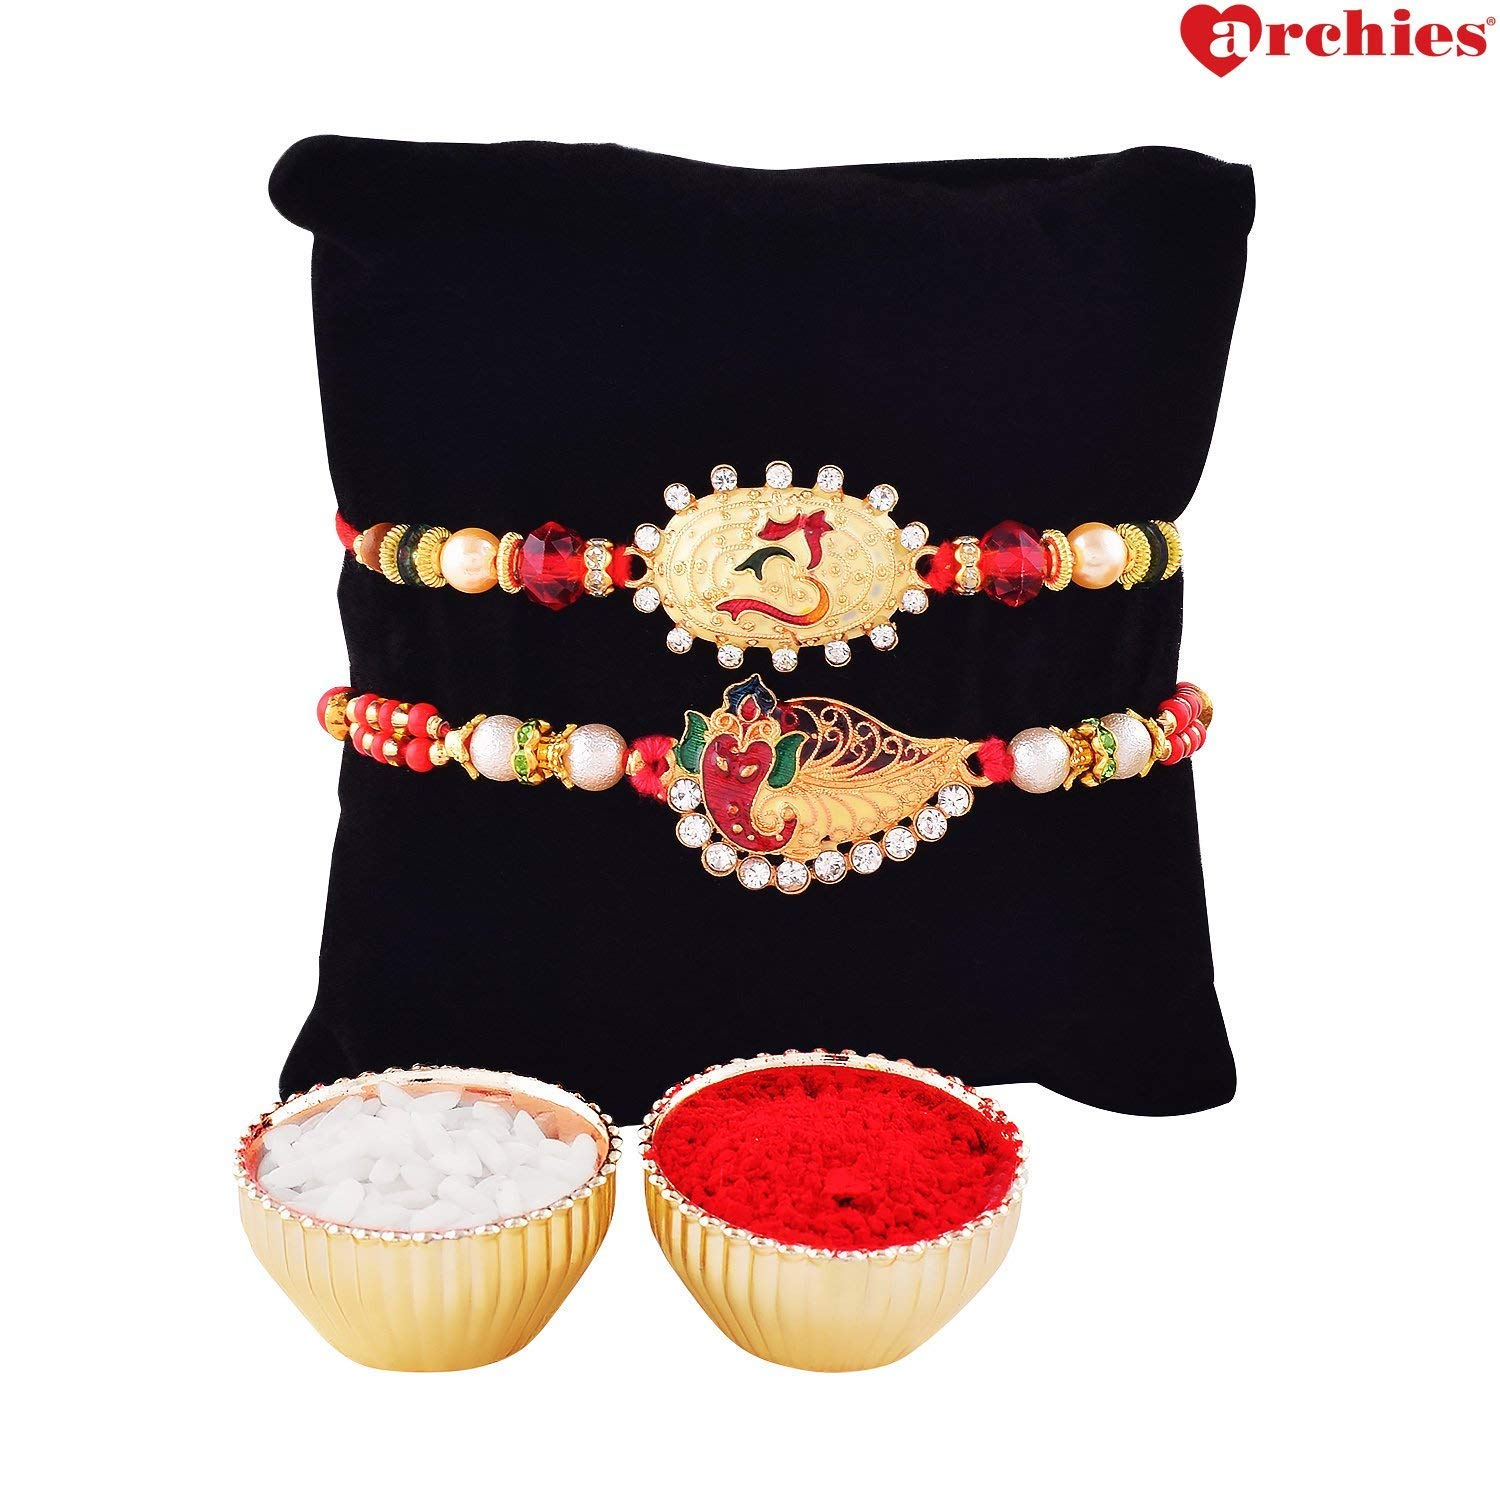 Archies Rakhi For Brother Beautiful Om Rakhi Ganesha Rakhi With